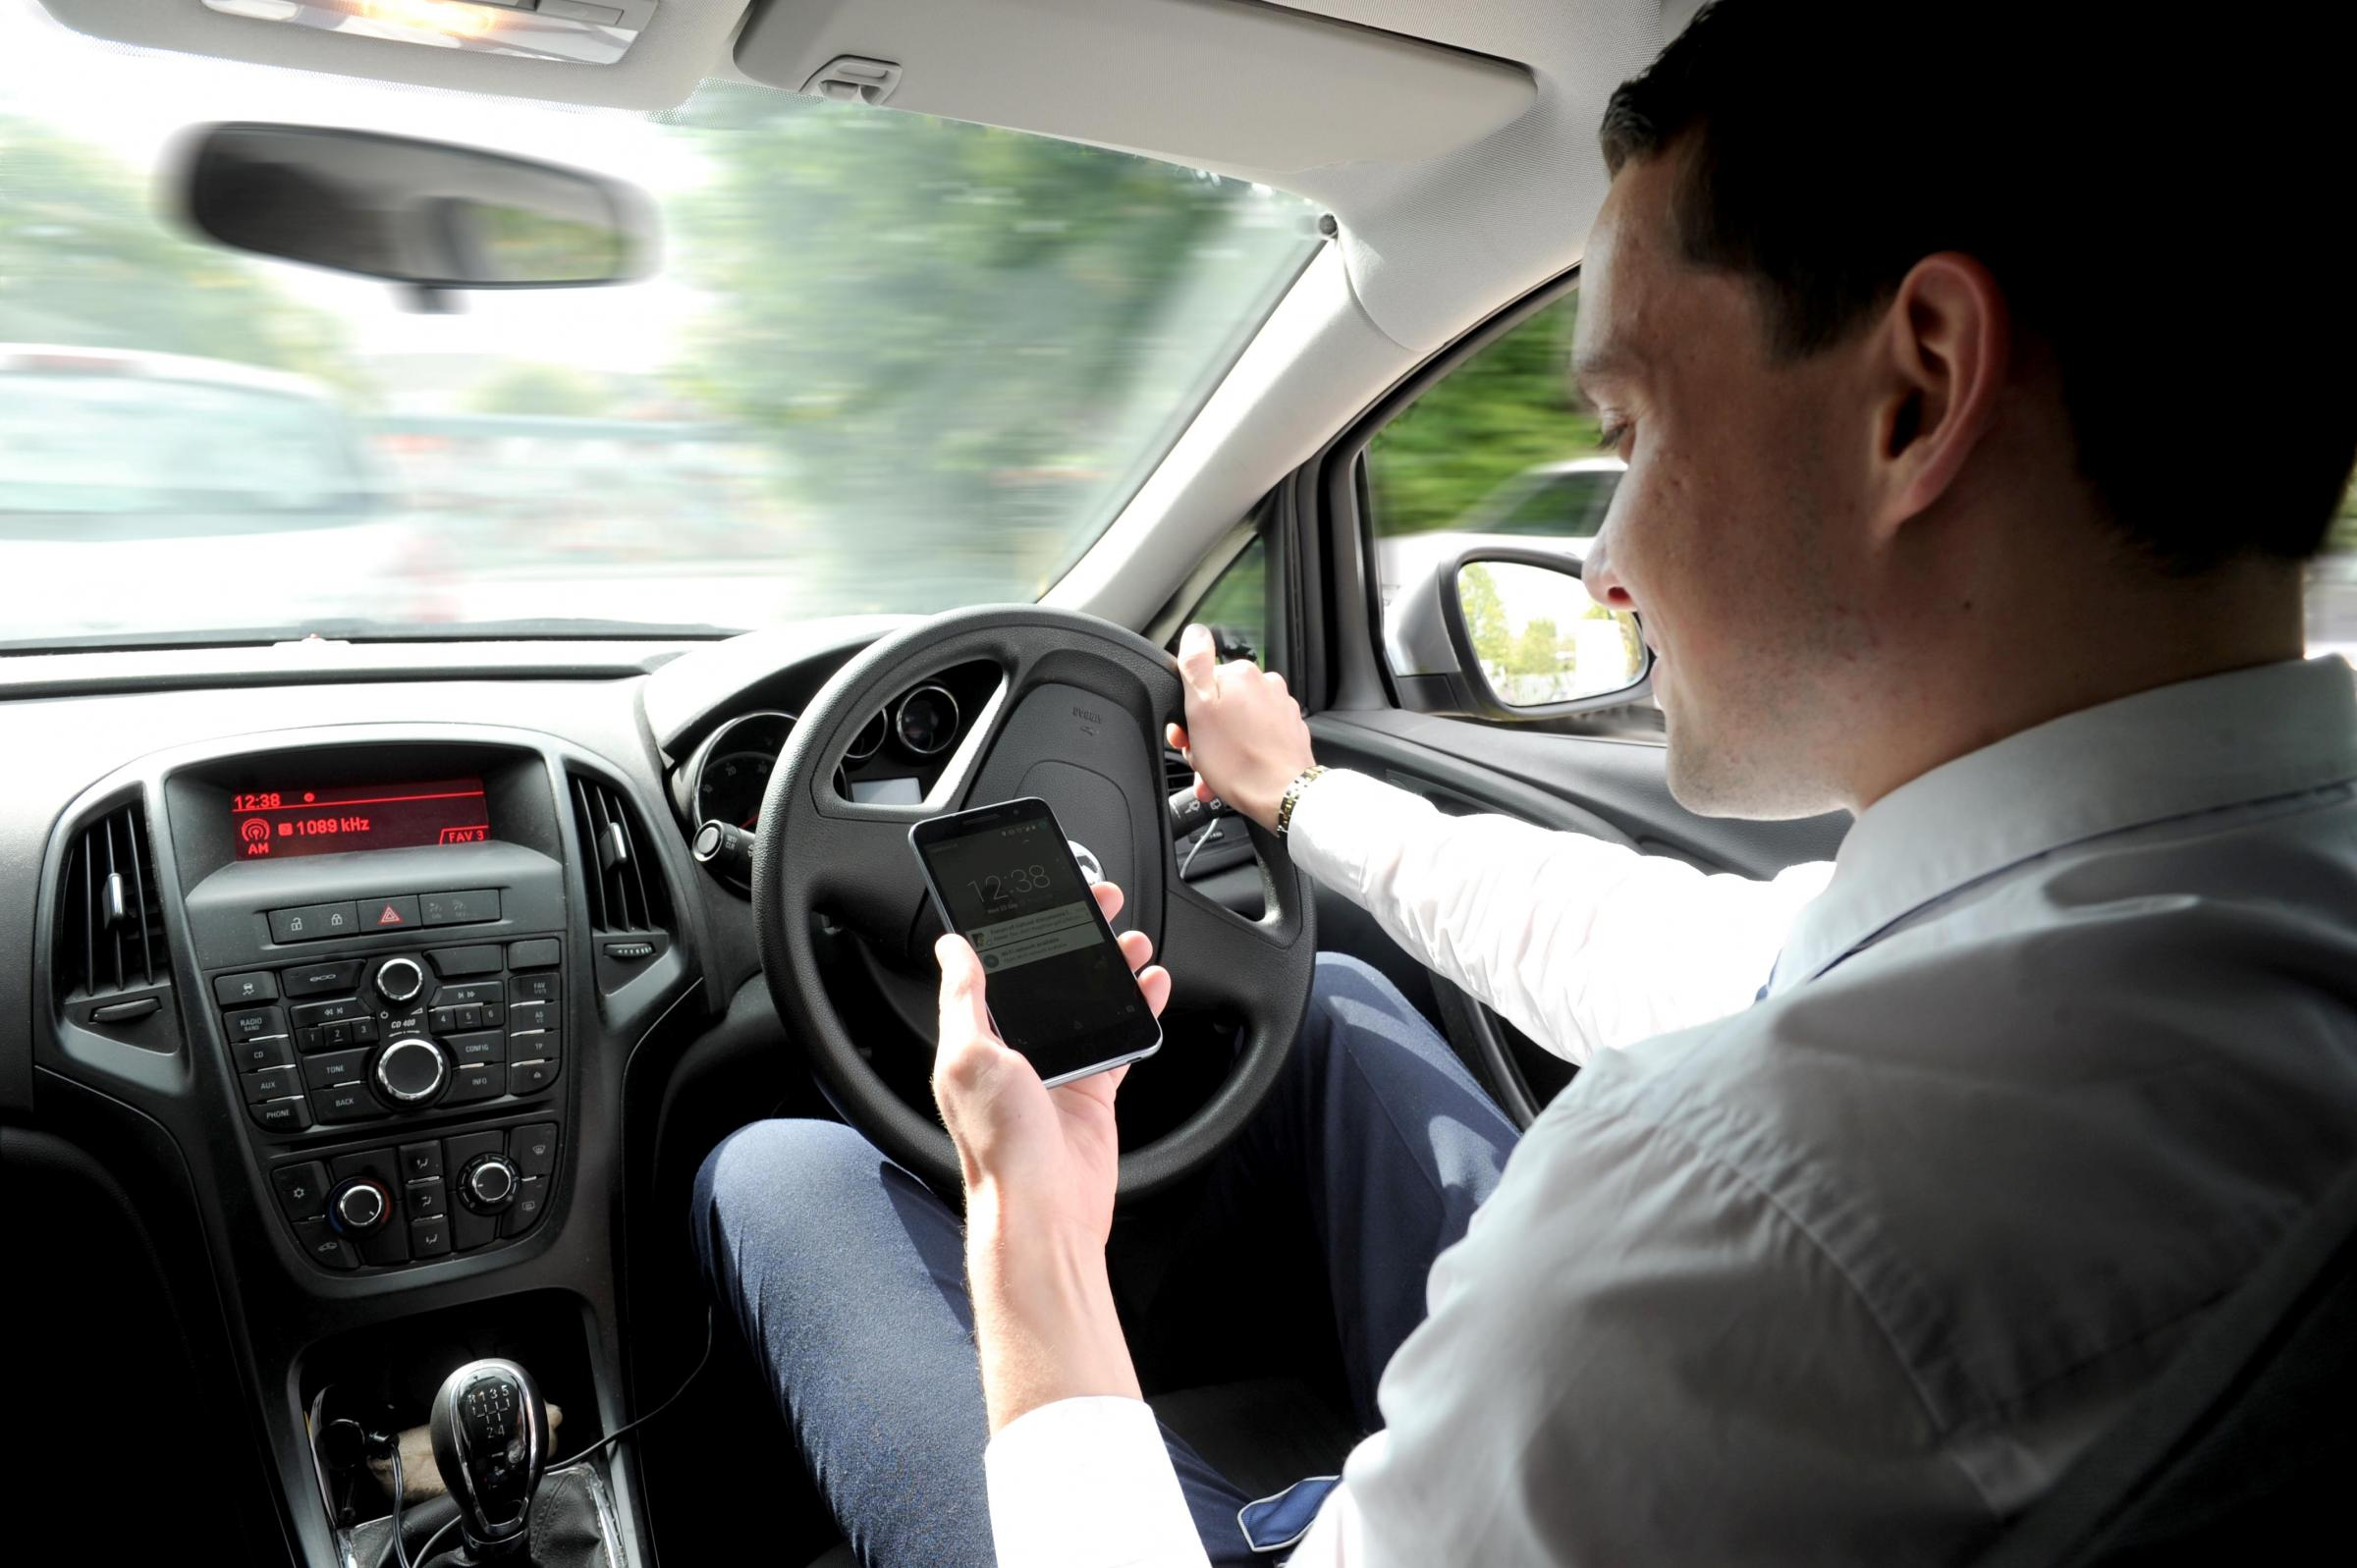 The whole truth about using your mobile phone in your car